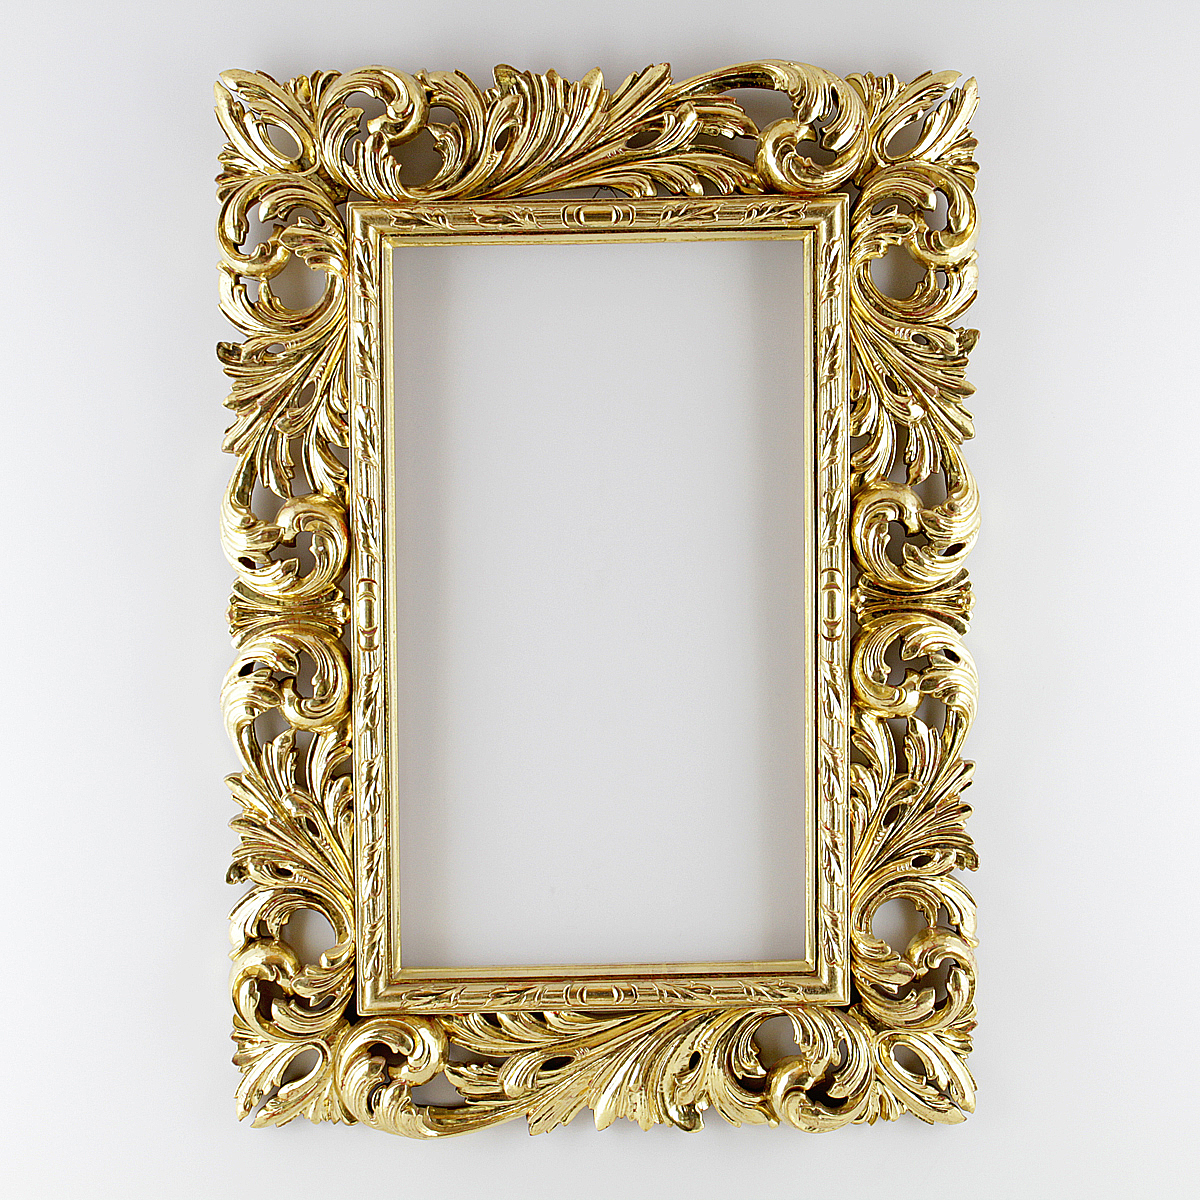 Baroque Gold Mirrors Baroque mirrors